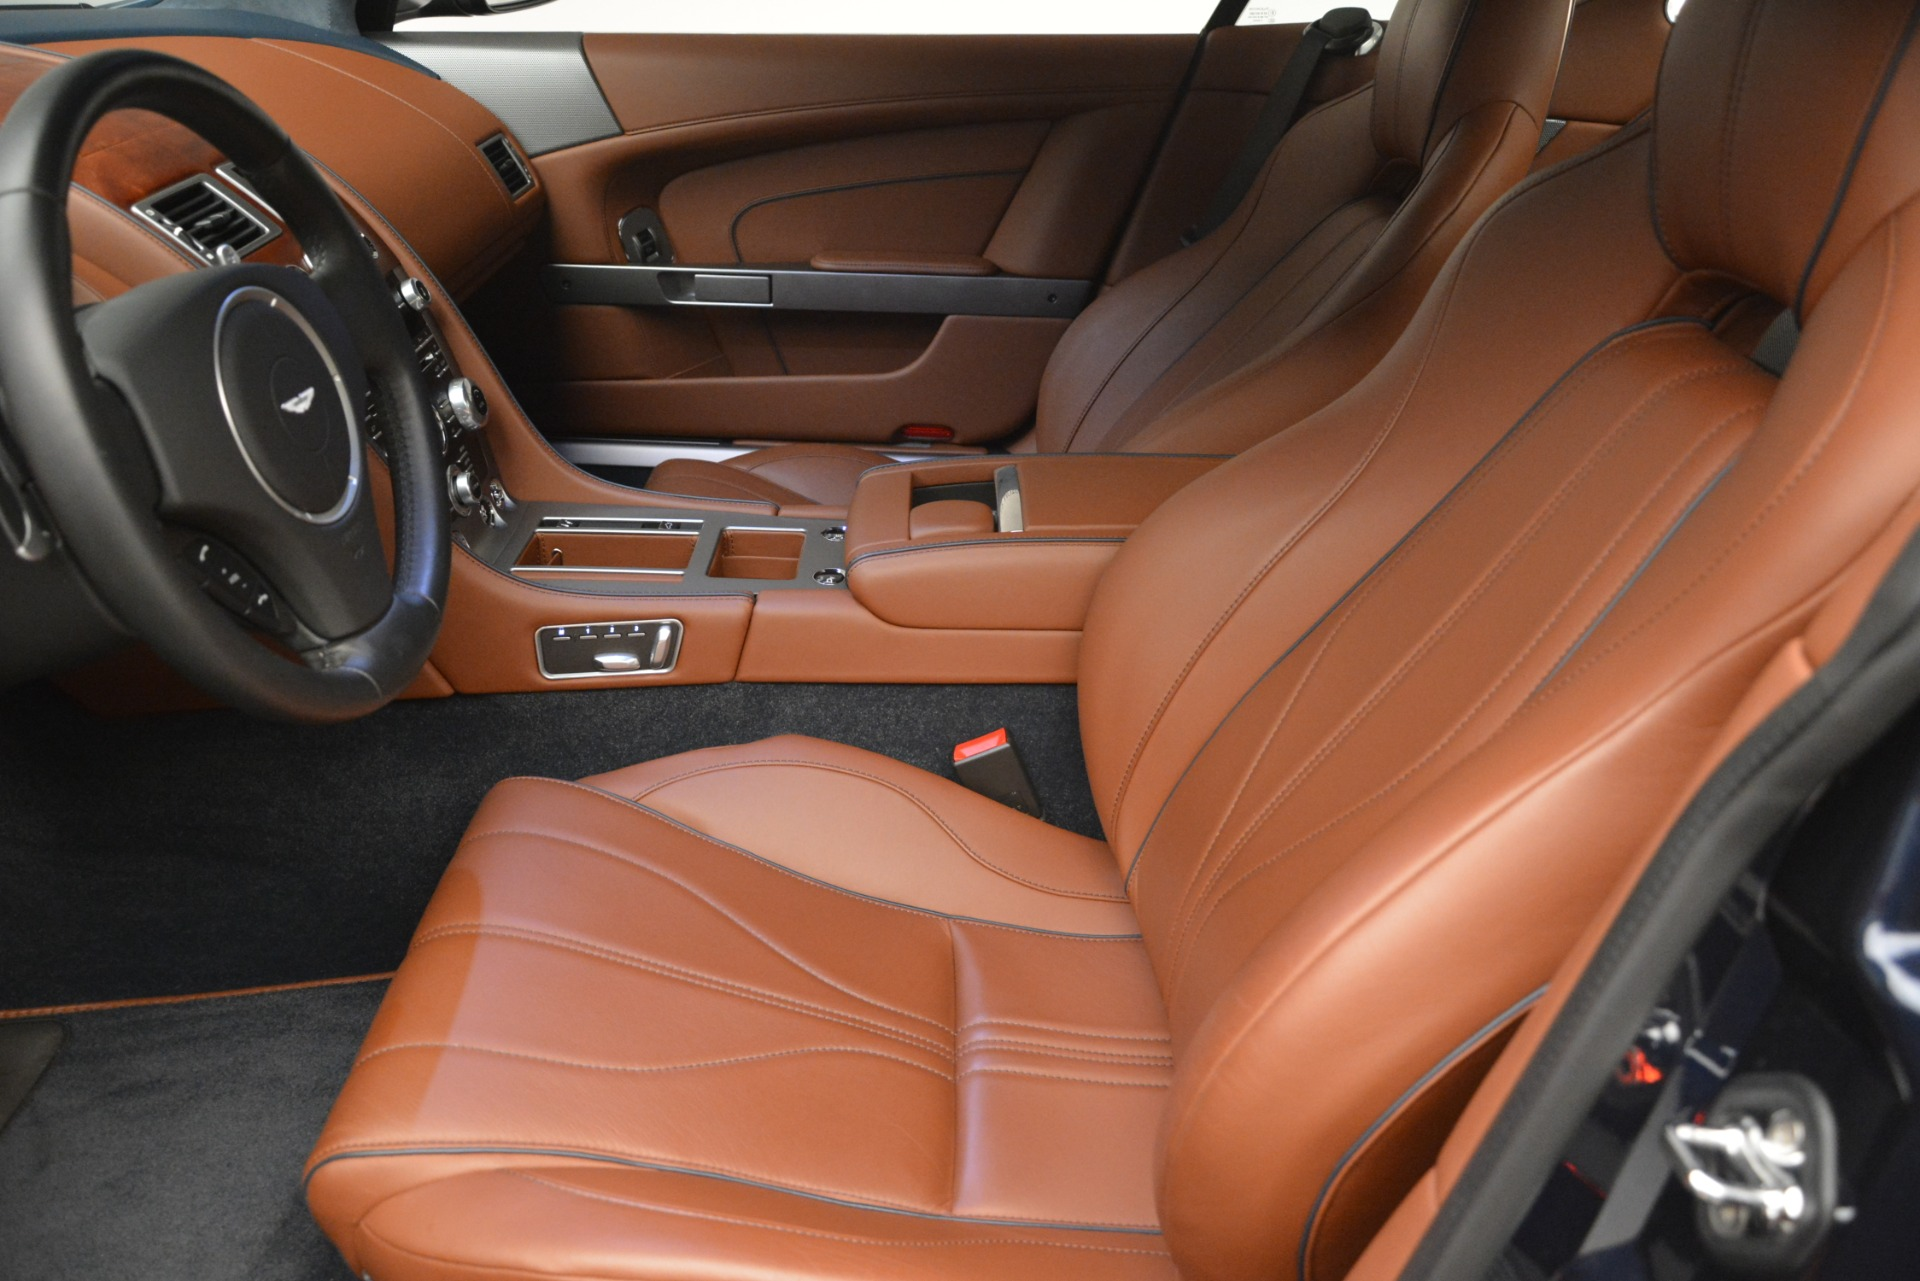 Used 2014 Aston Martin DB9 Coupe For Sale In Greenwich, CT 3010_p15